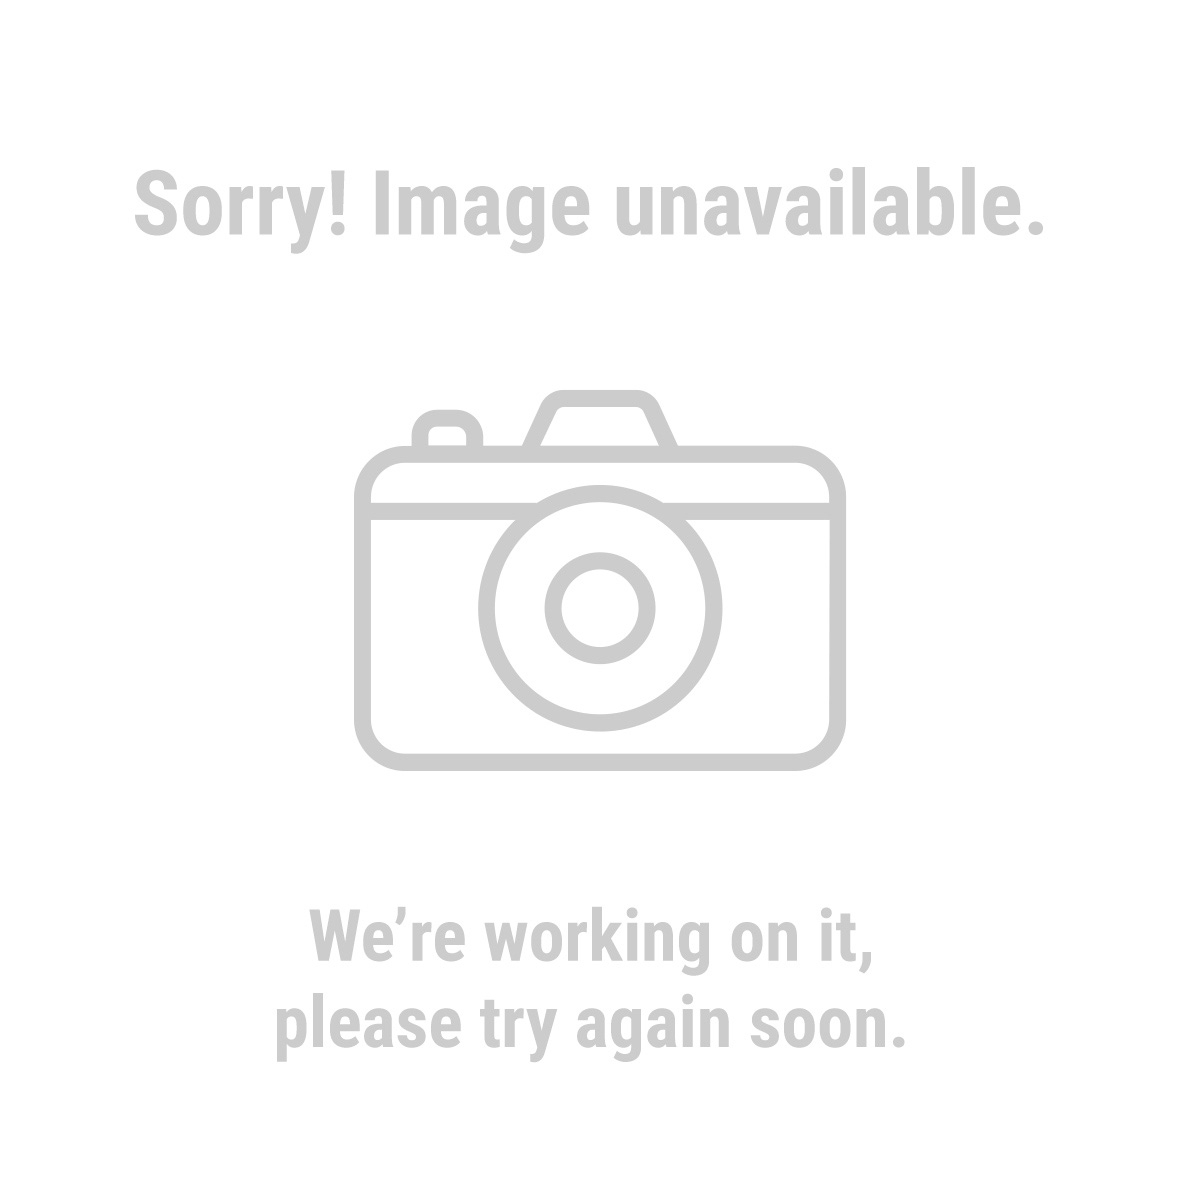 Cen-Tech 99857 1.5 Amp Three Stage Onboard 12V Battery Charger/Maintainer